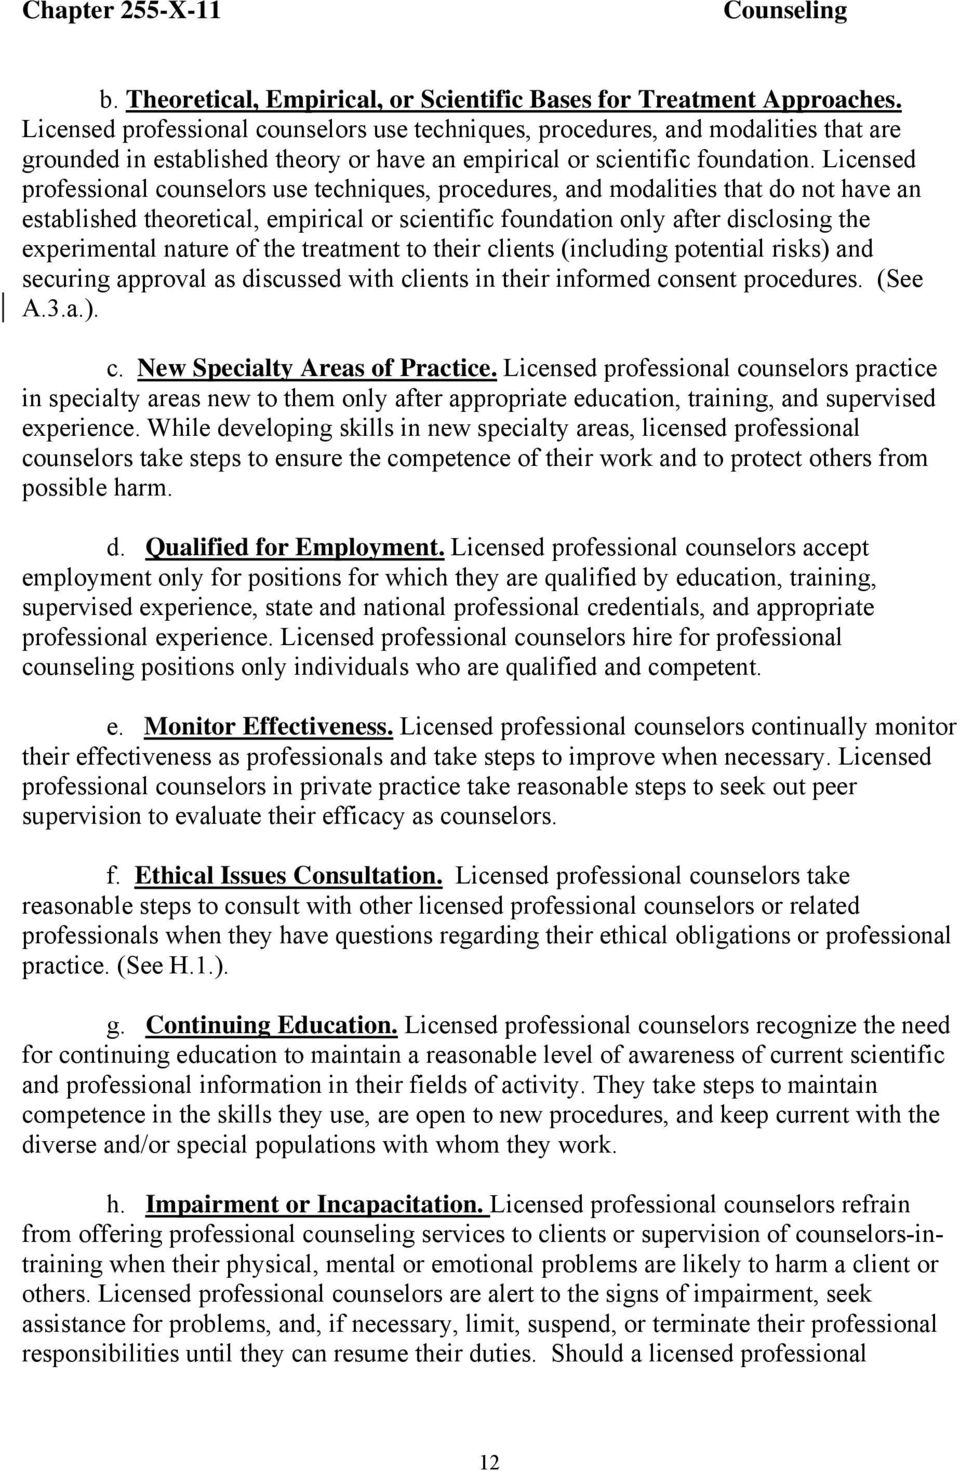 Licensed professional counselors use techniques, procedures, and modalities that do not have an established theoretical, empirical or scientific foundation only after disclosing the experimental